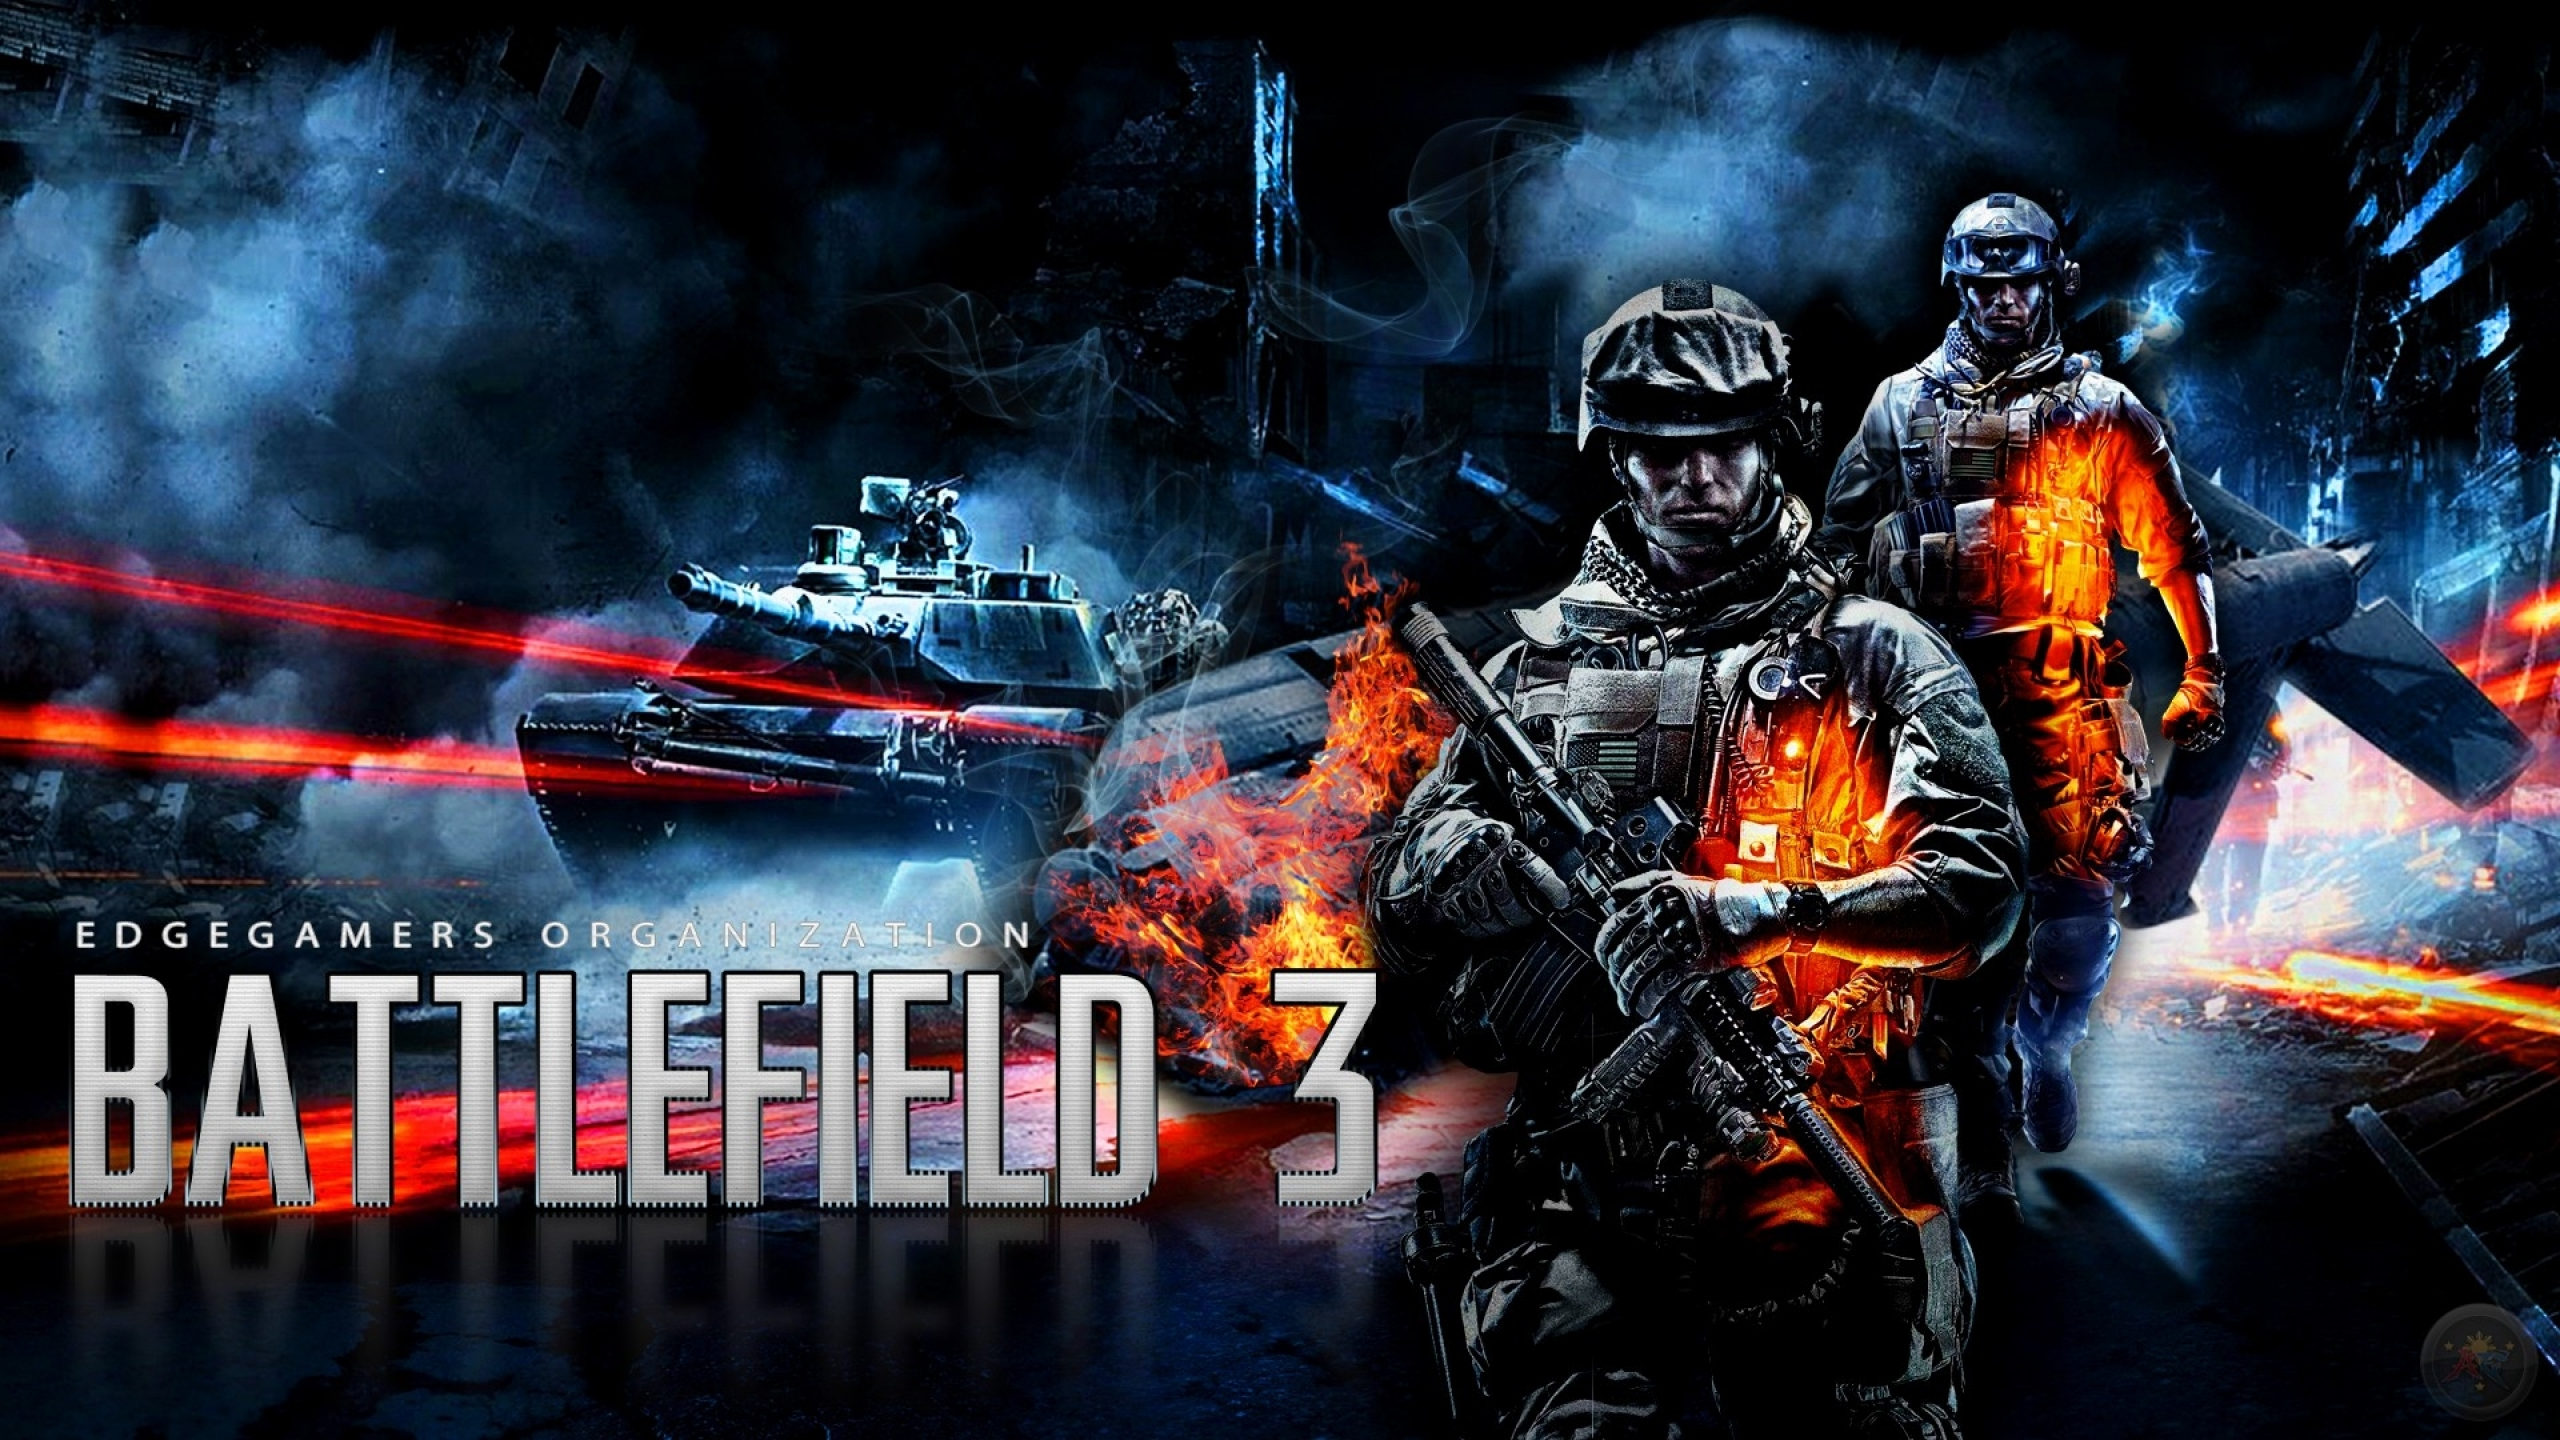 2560x1440 computers battlefield 3 1920x1080 wallpaper Wallpaper 2560x1440